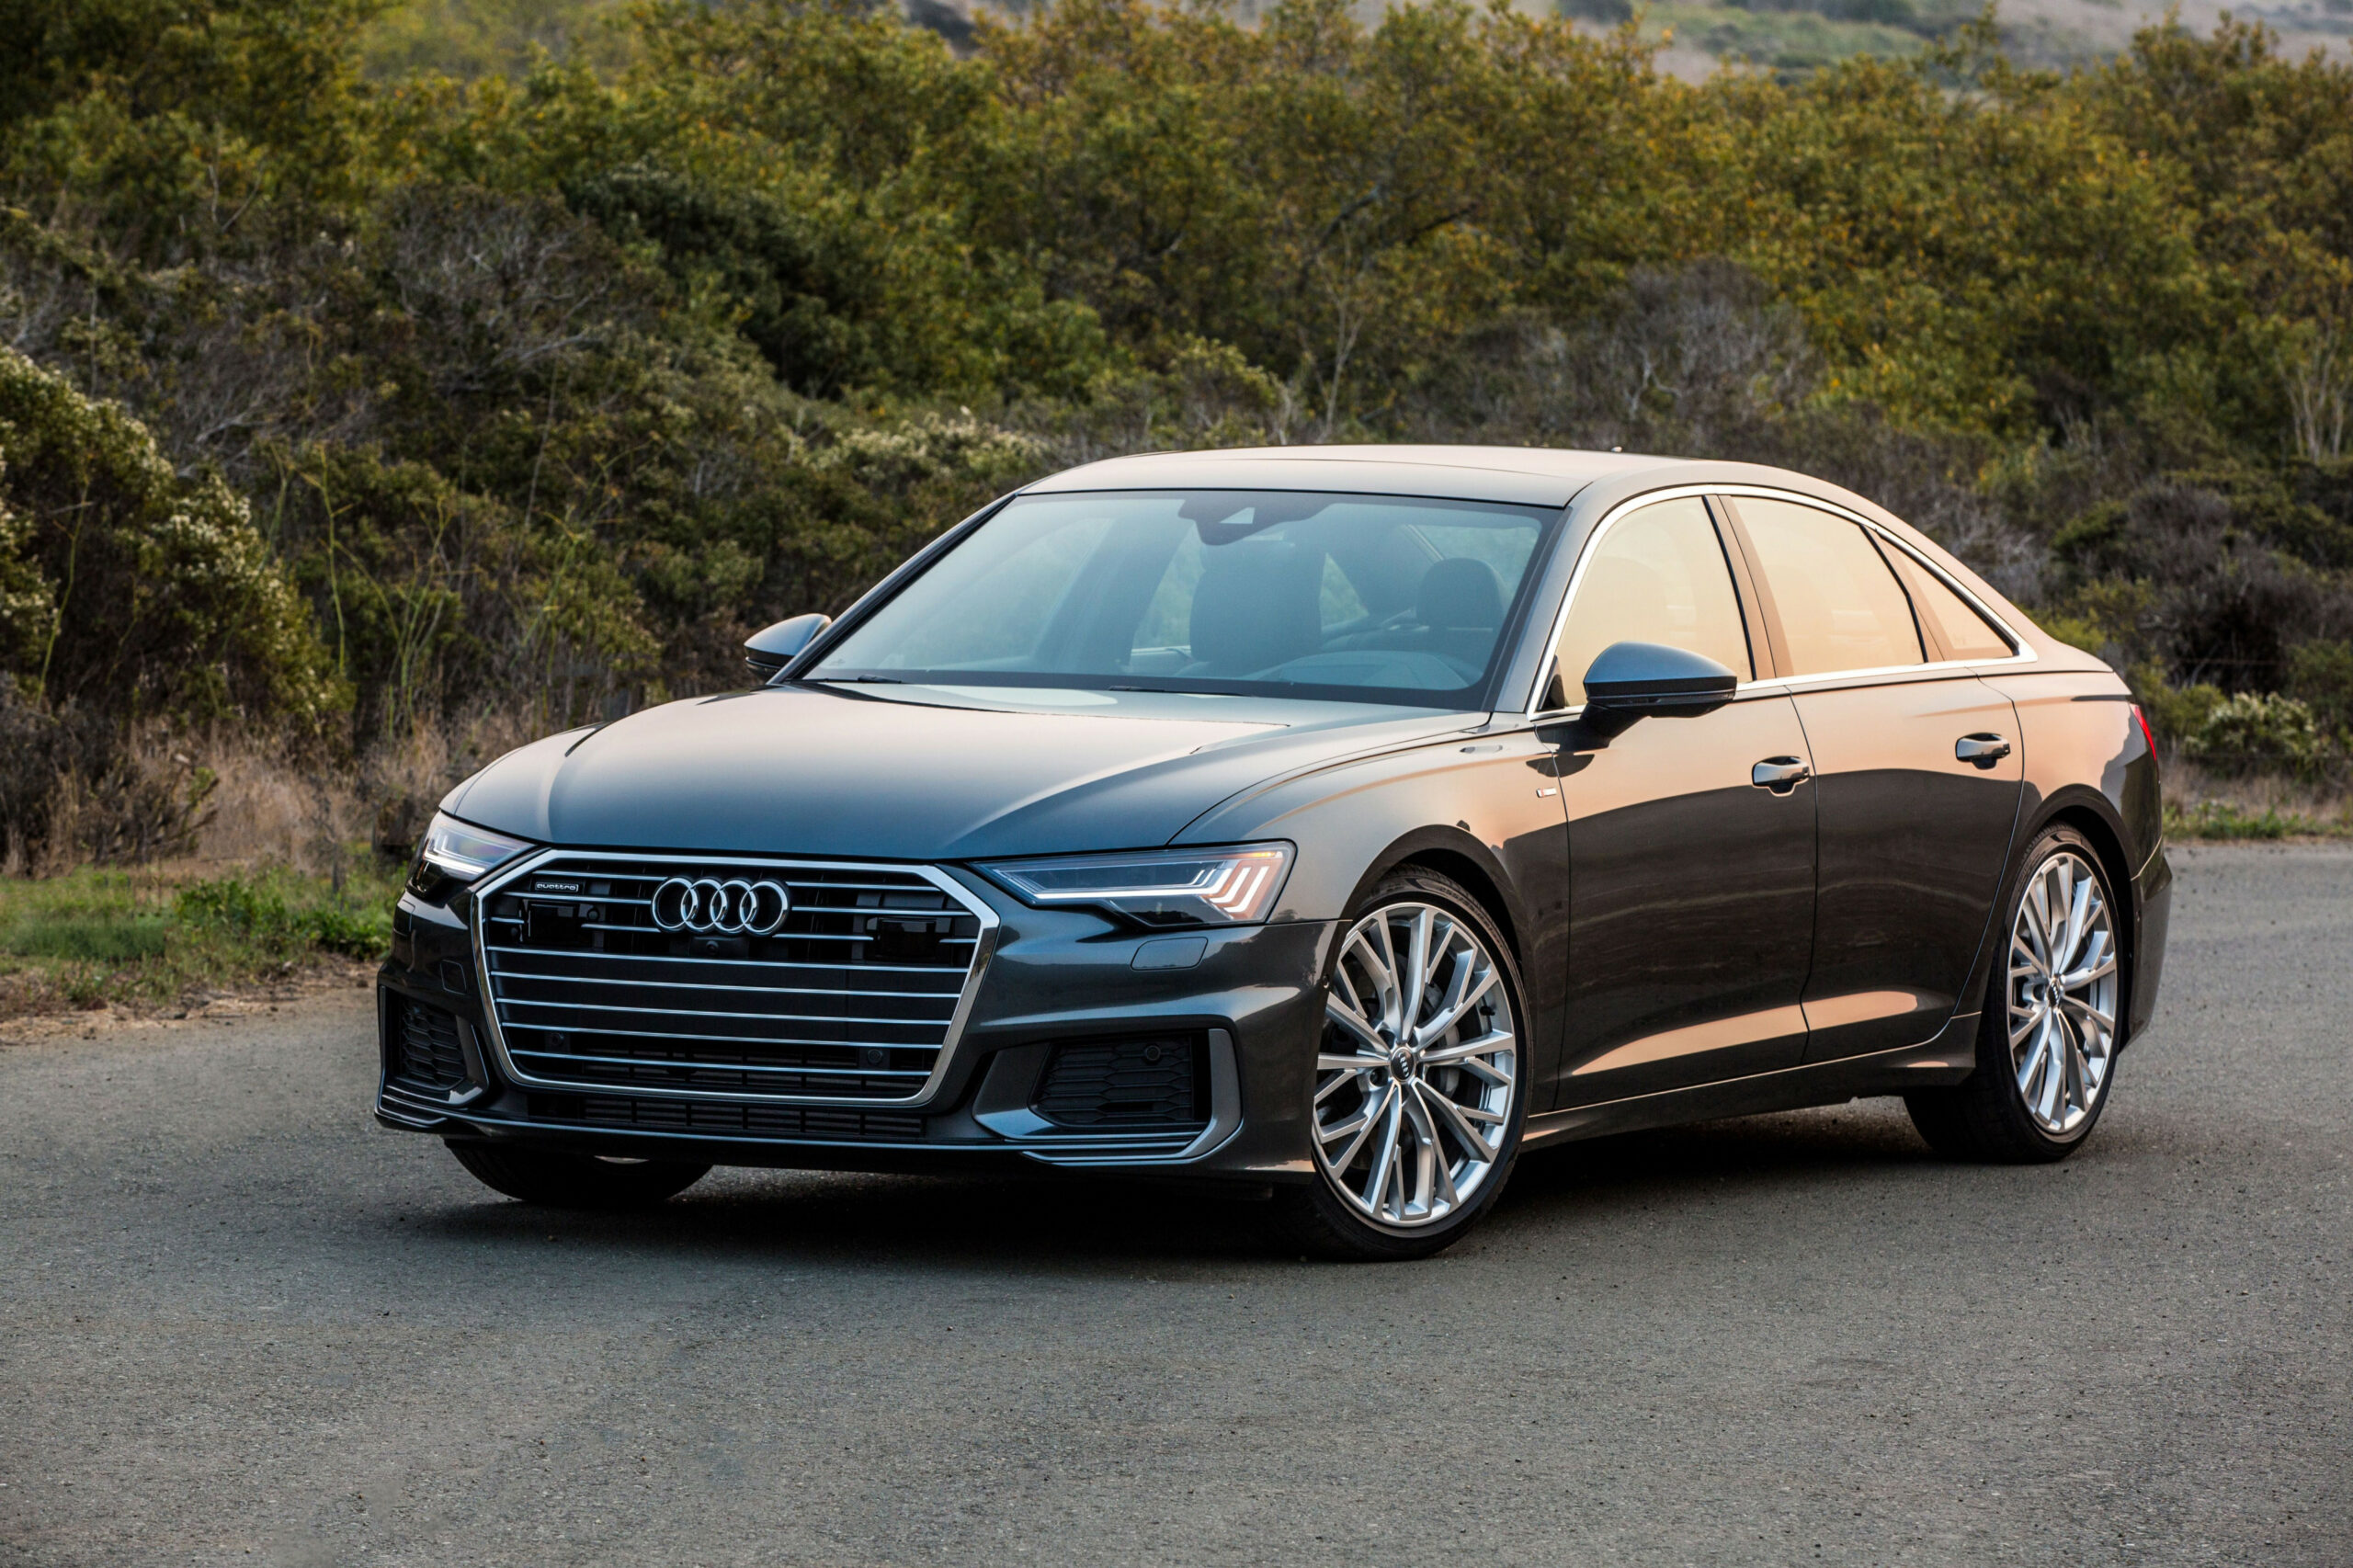 6 Audi A6 Review, Pricing, and Specs | 2020 Audi A6 Msrp